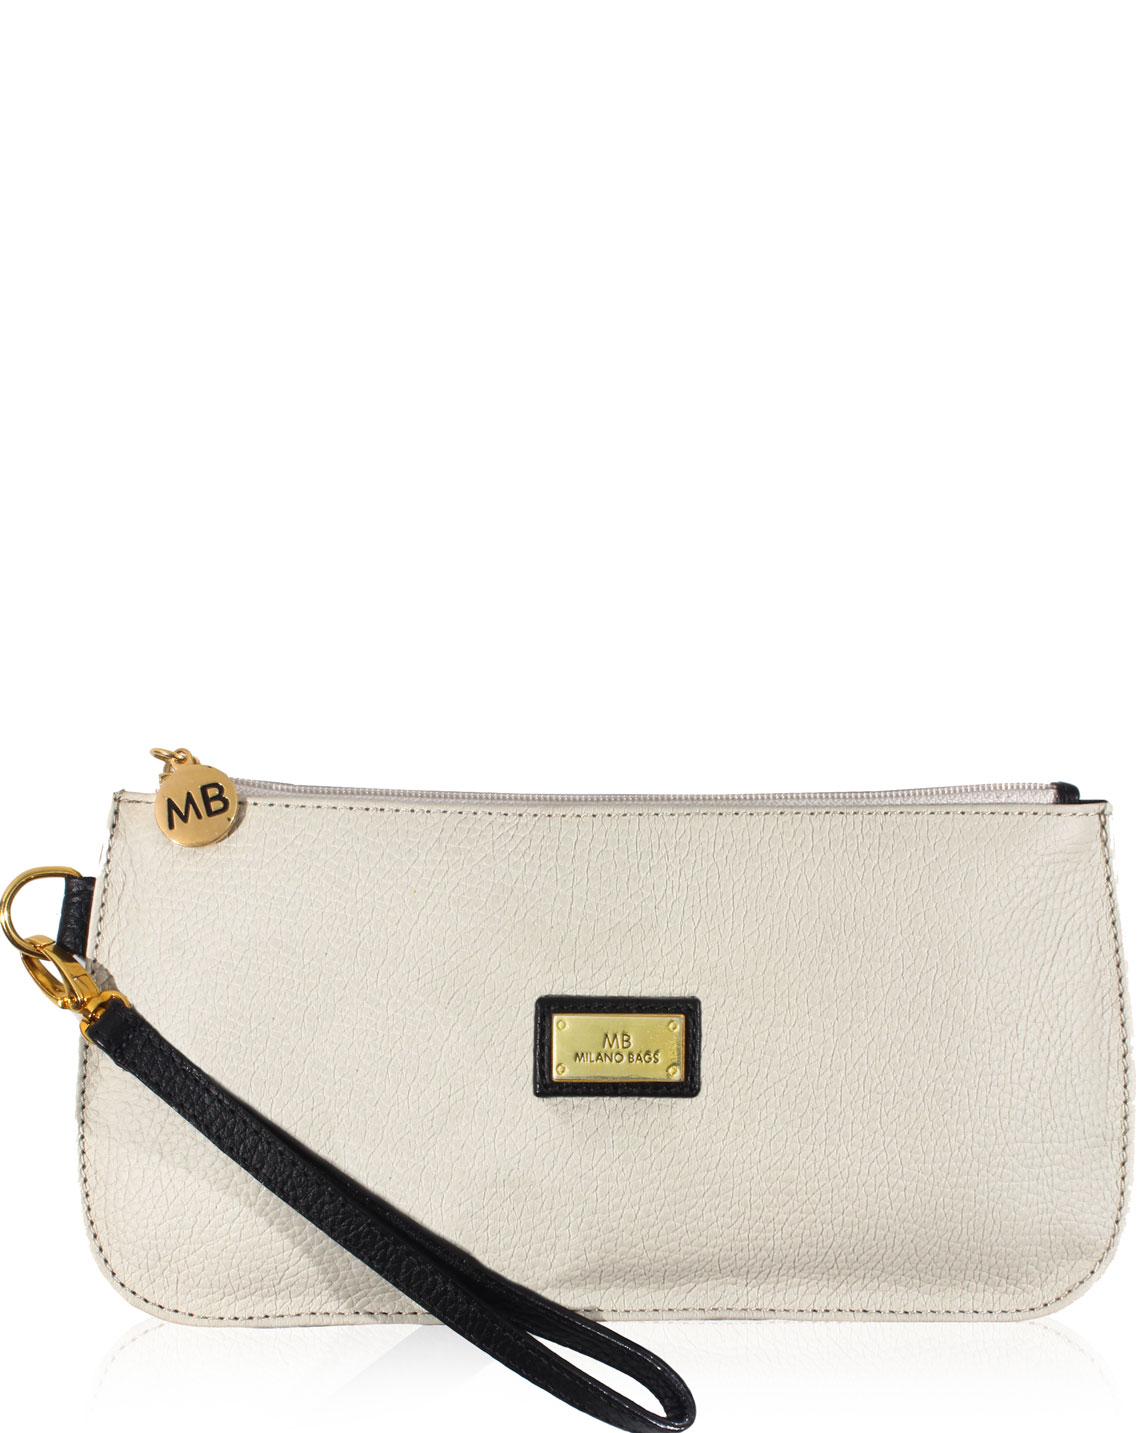 Cartera Portacosmetico DPC-9 Color Blanco